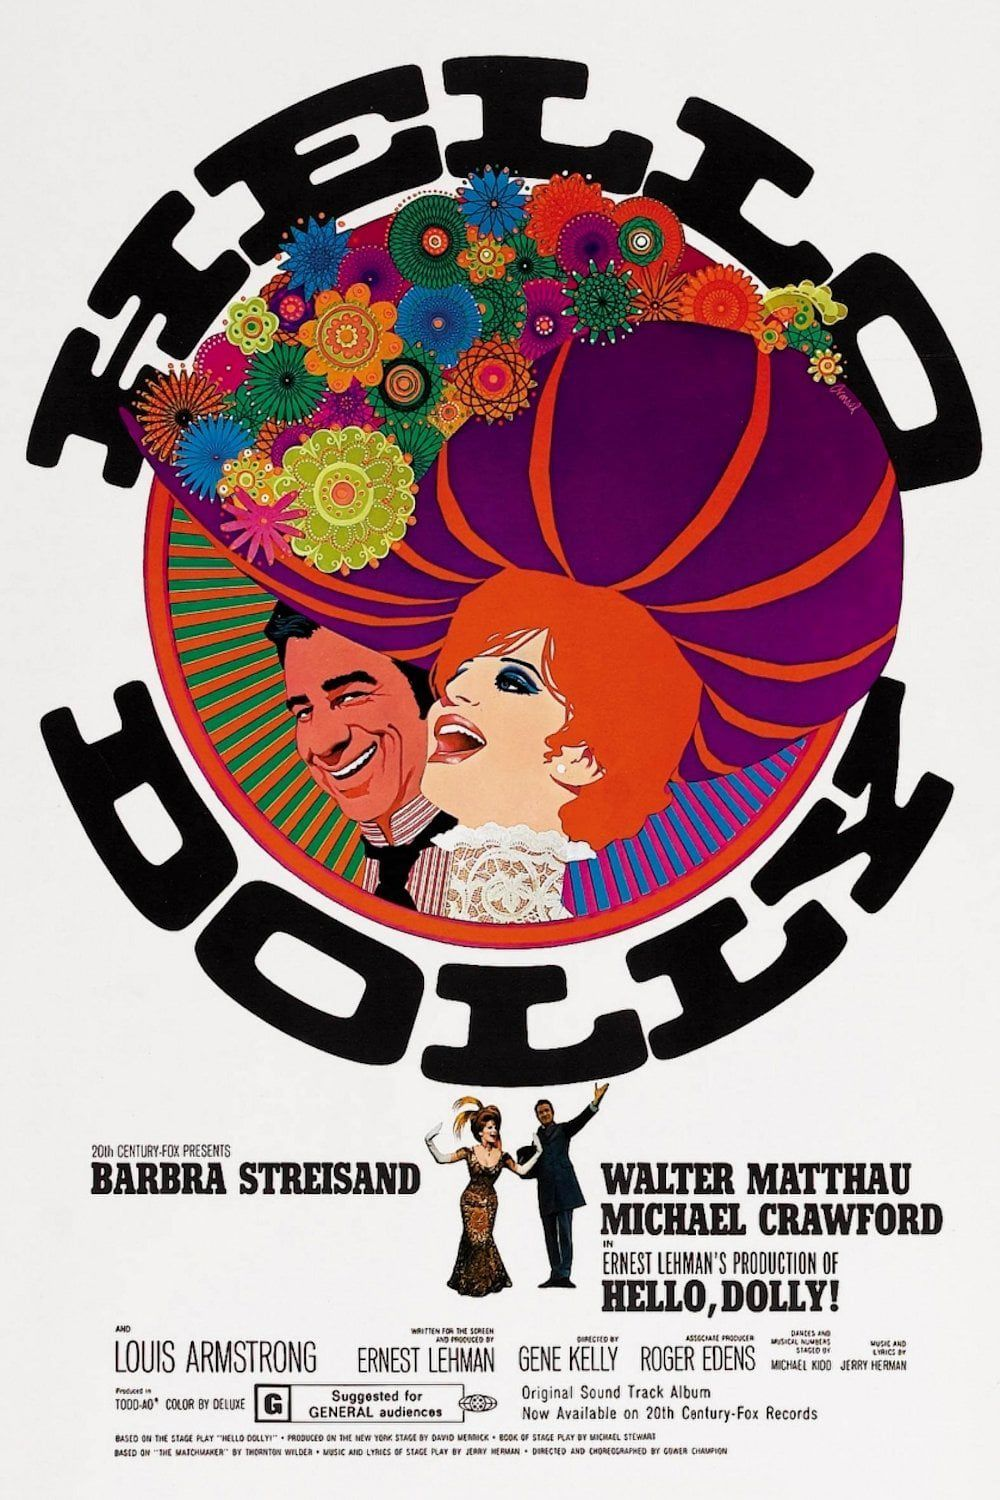 Hello, Dolly! (film)